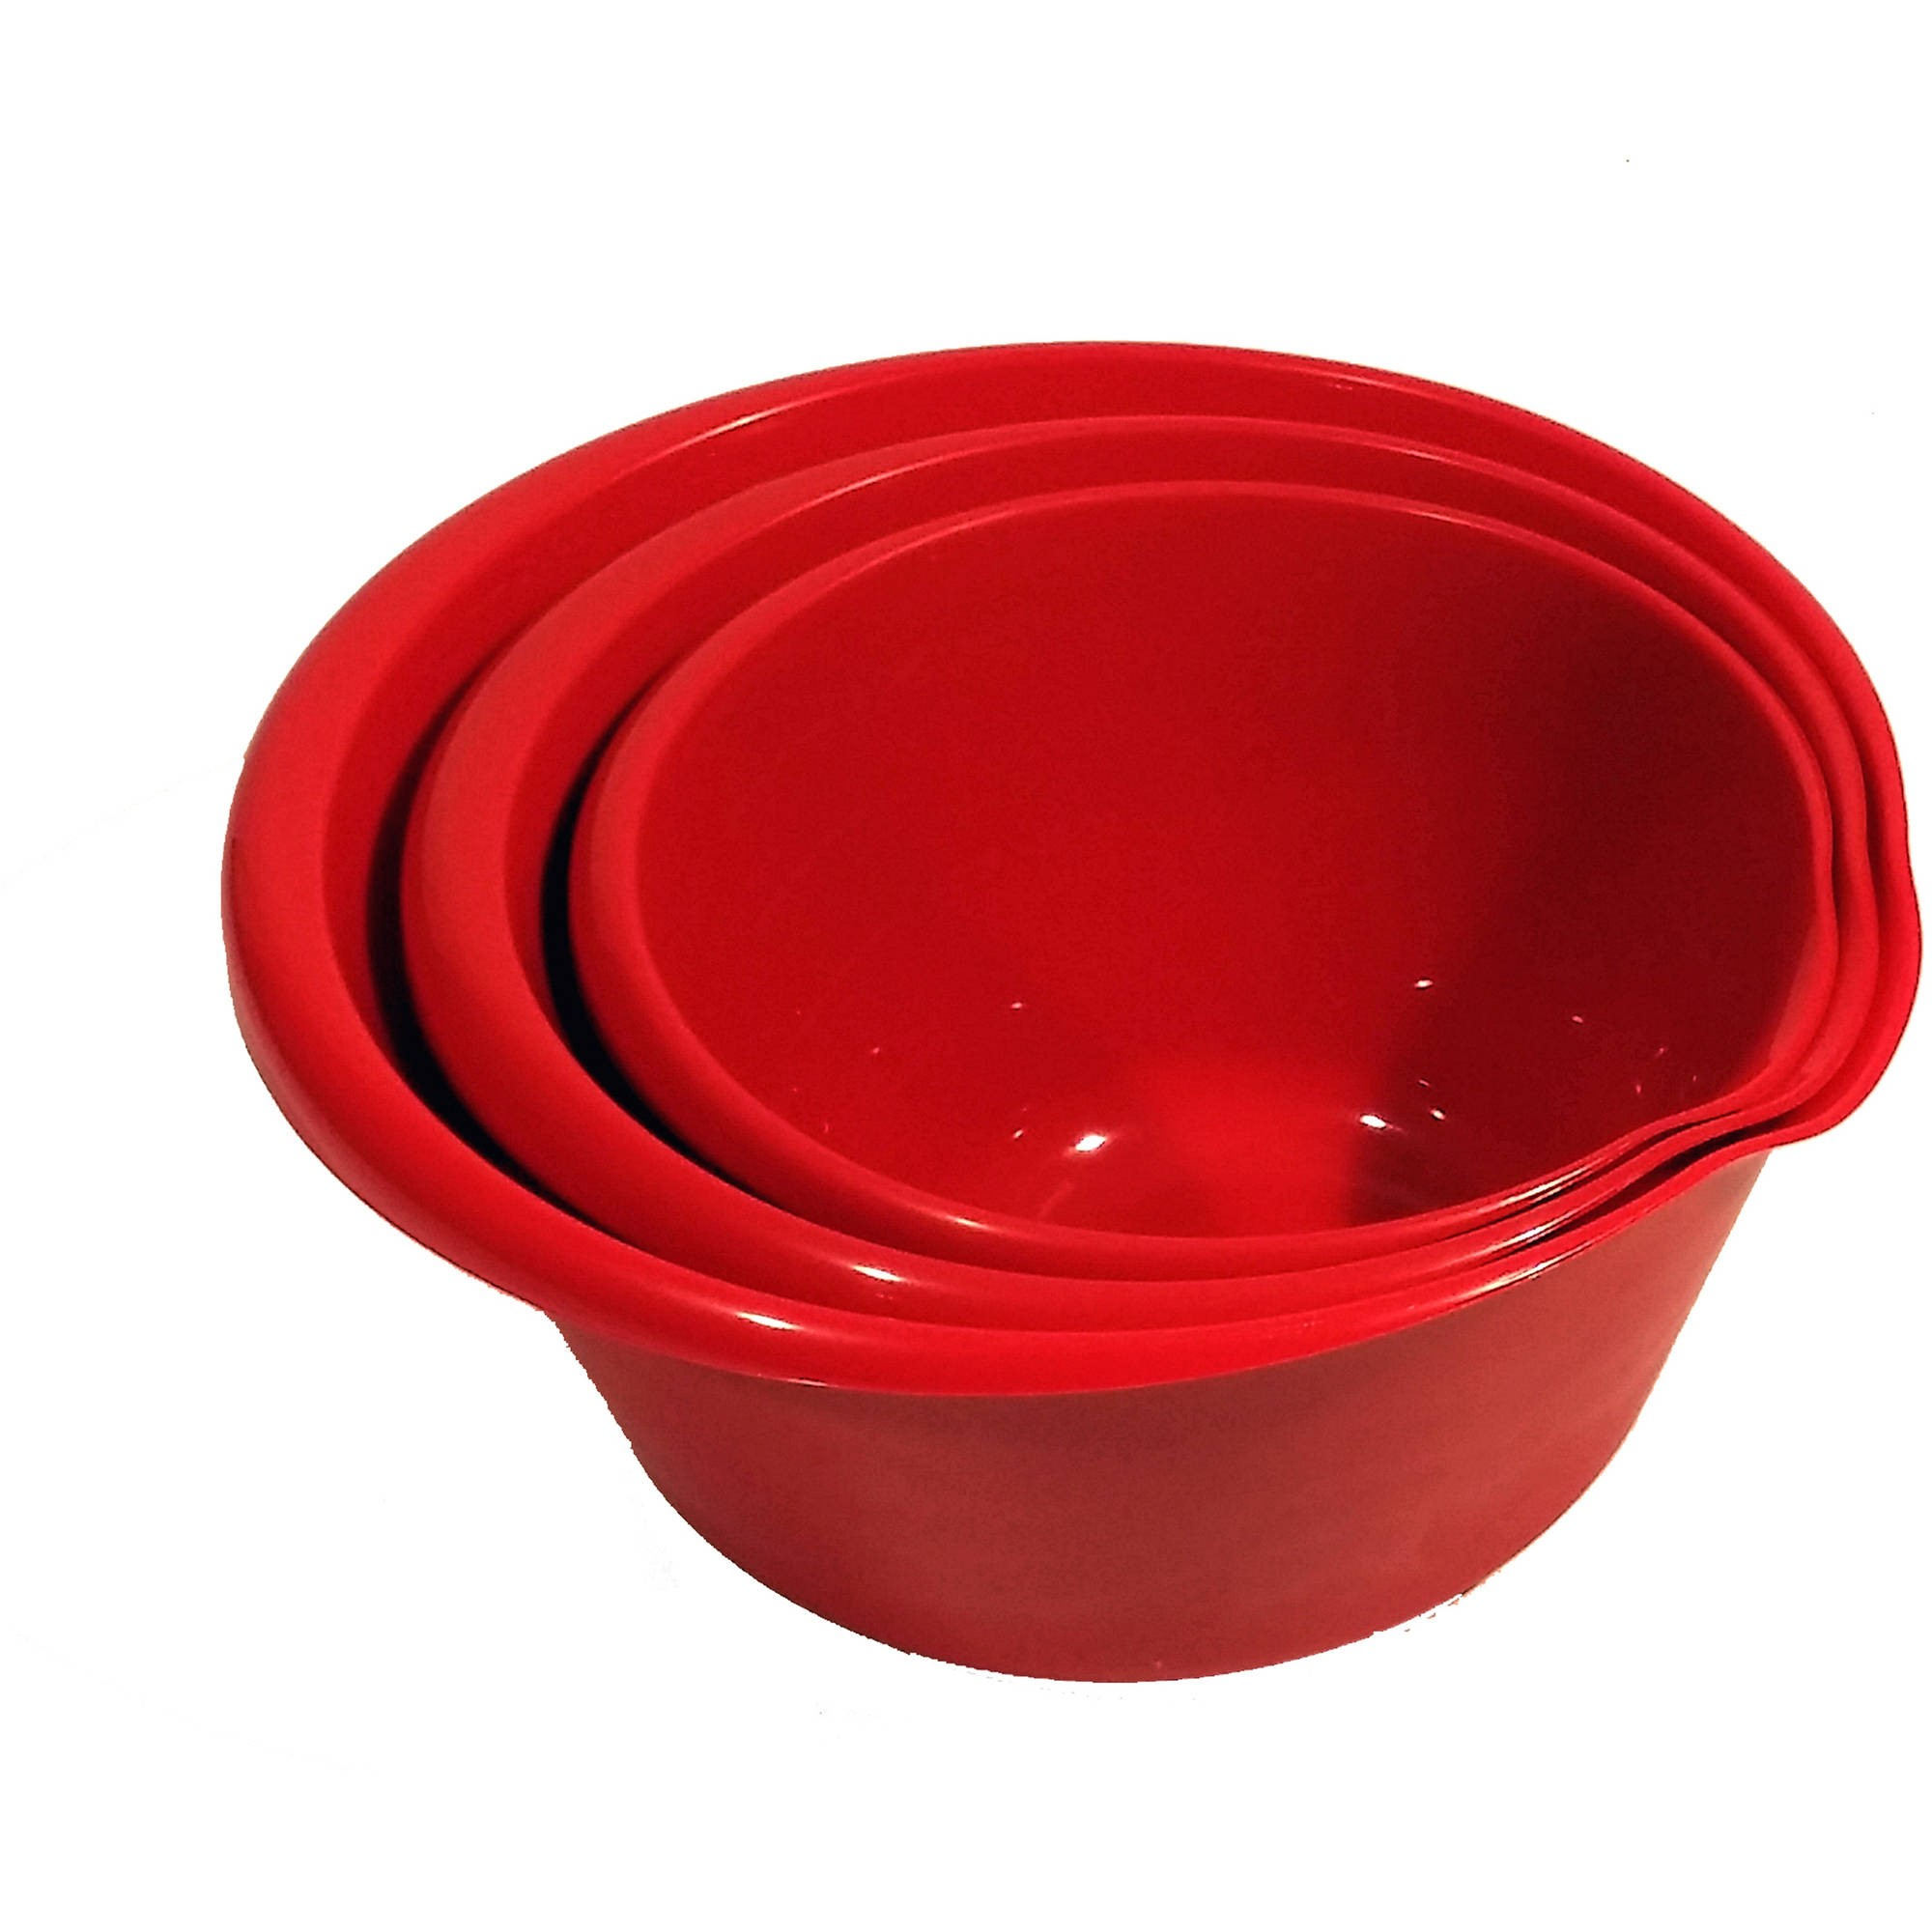 Mainstays 3-Piece Bowl Red